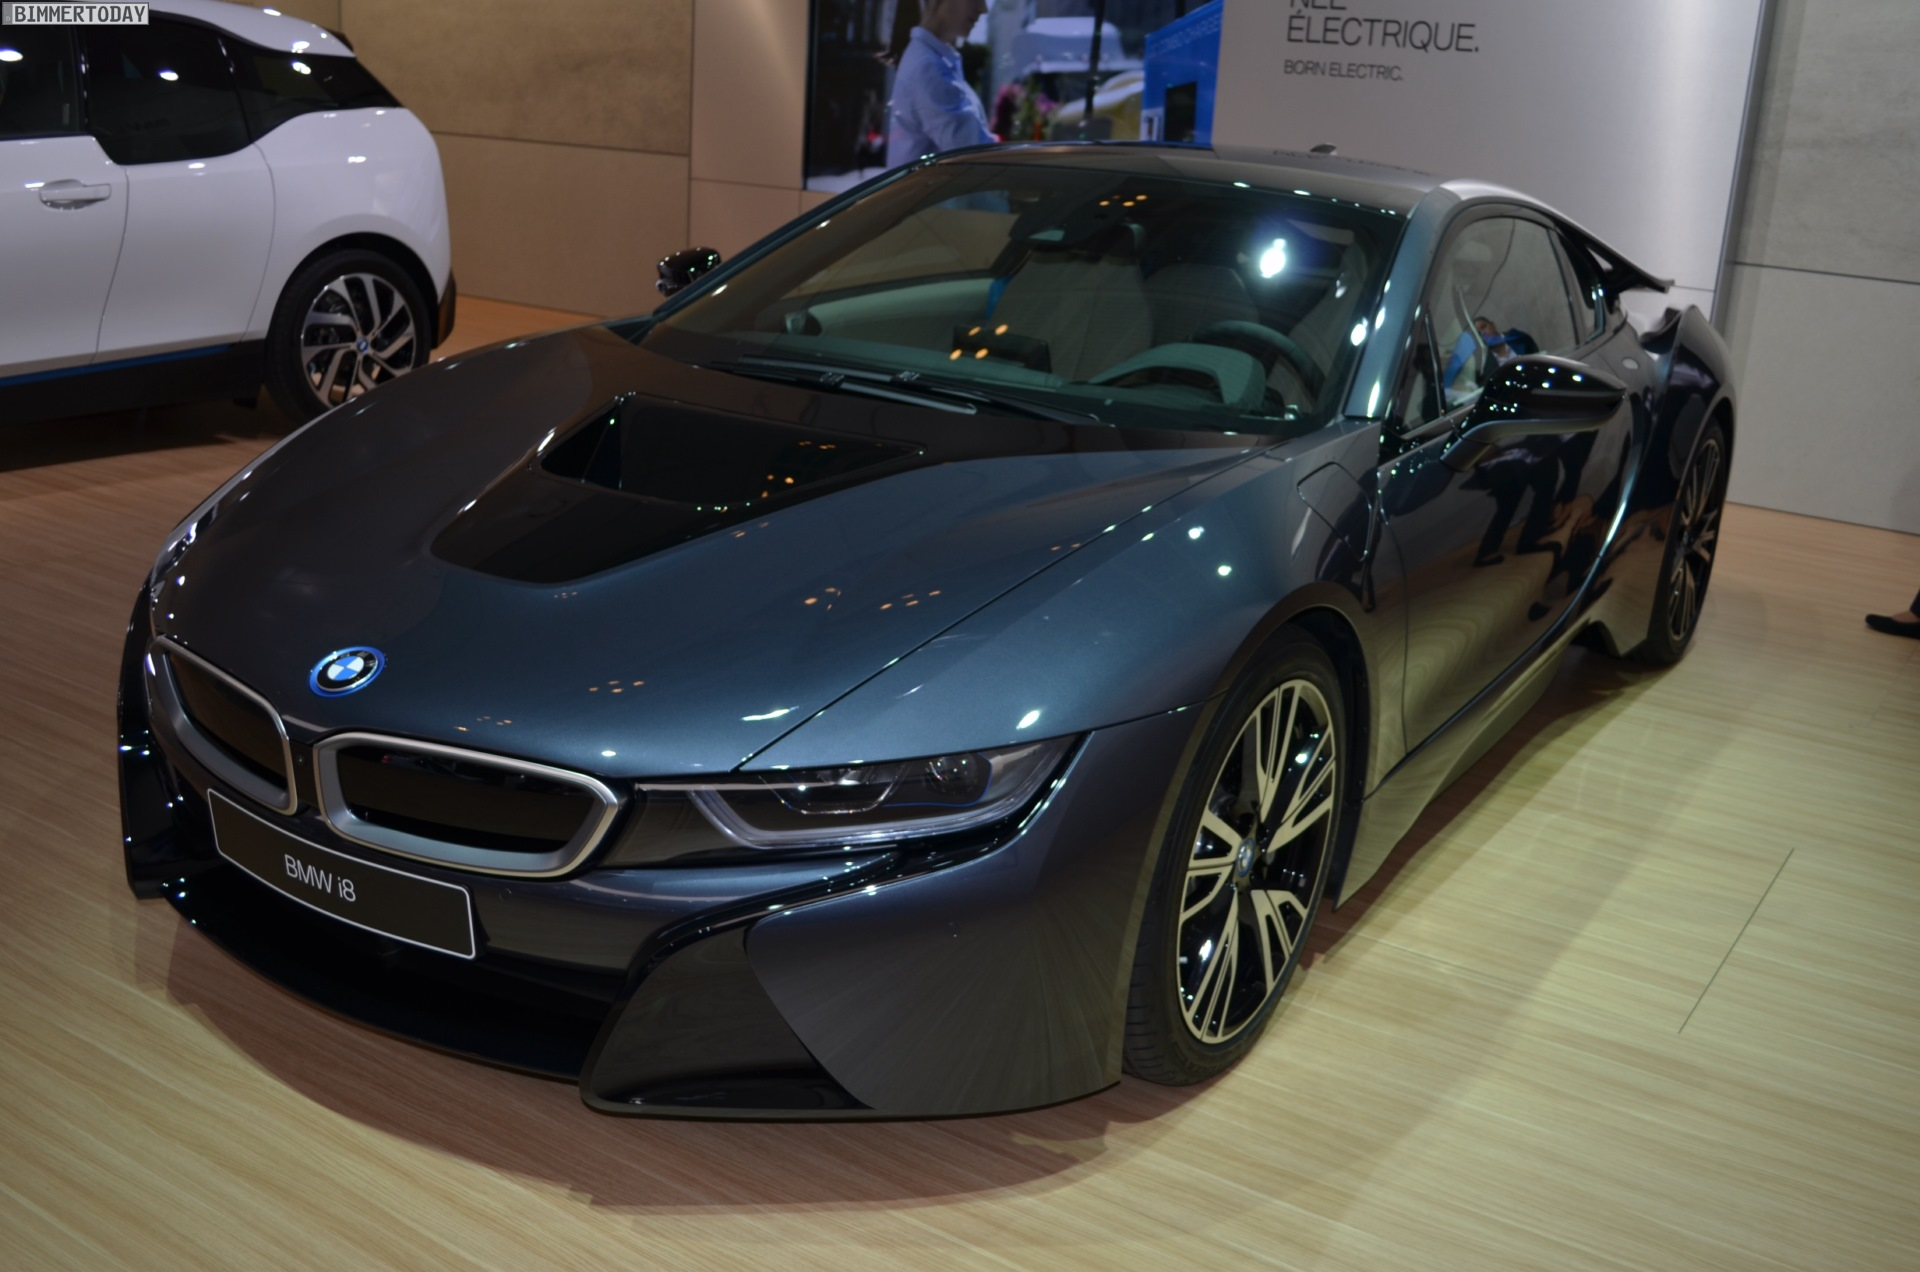 Bmw I8 Protonic Dark Silver Als Vorlage F 252 R Bmw Cruise E Bike